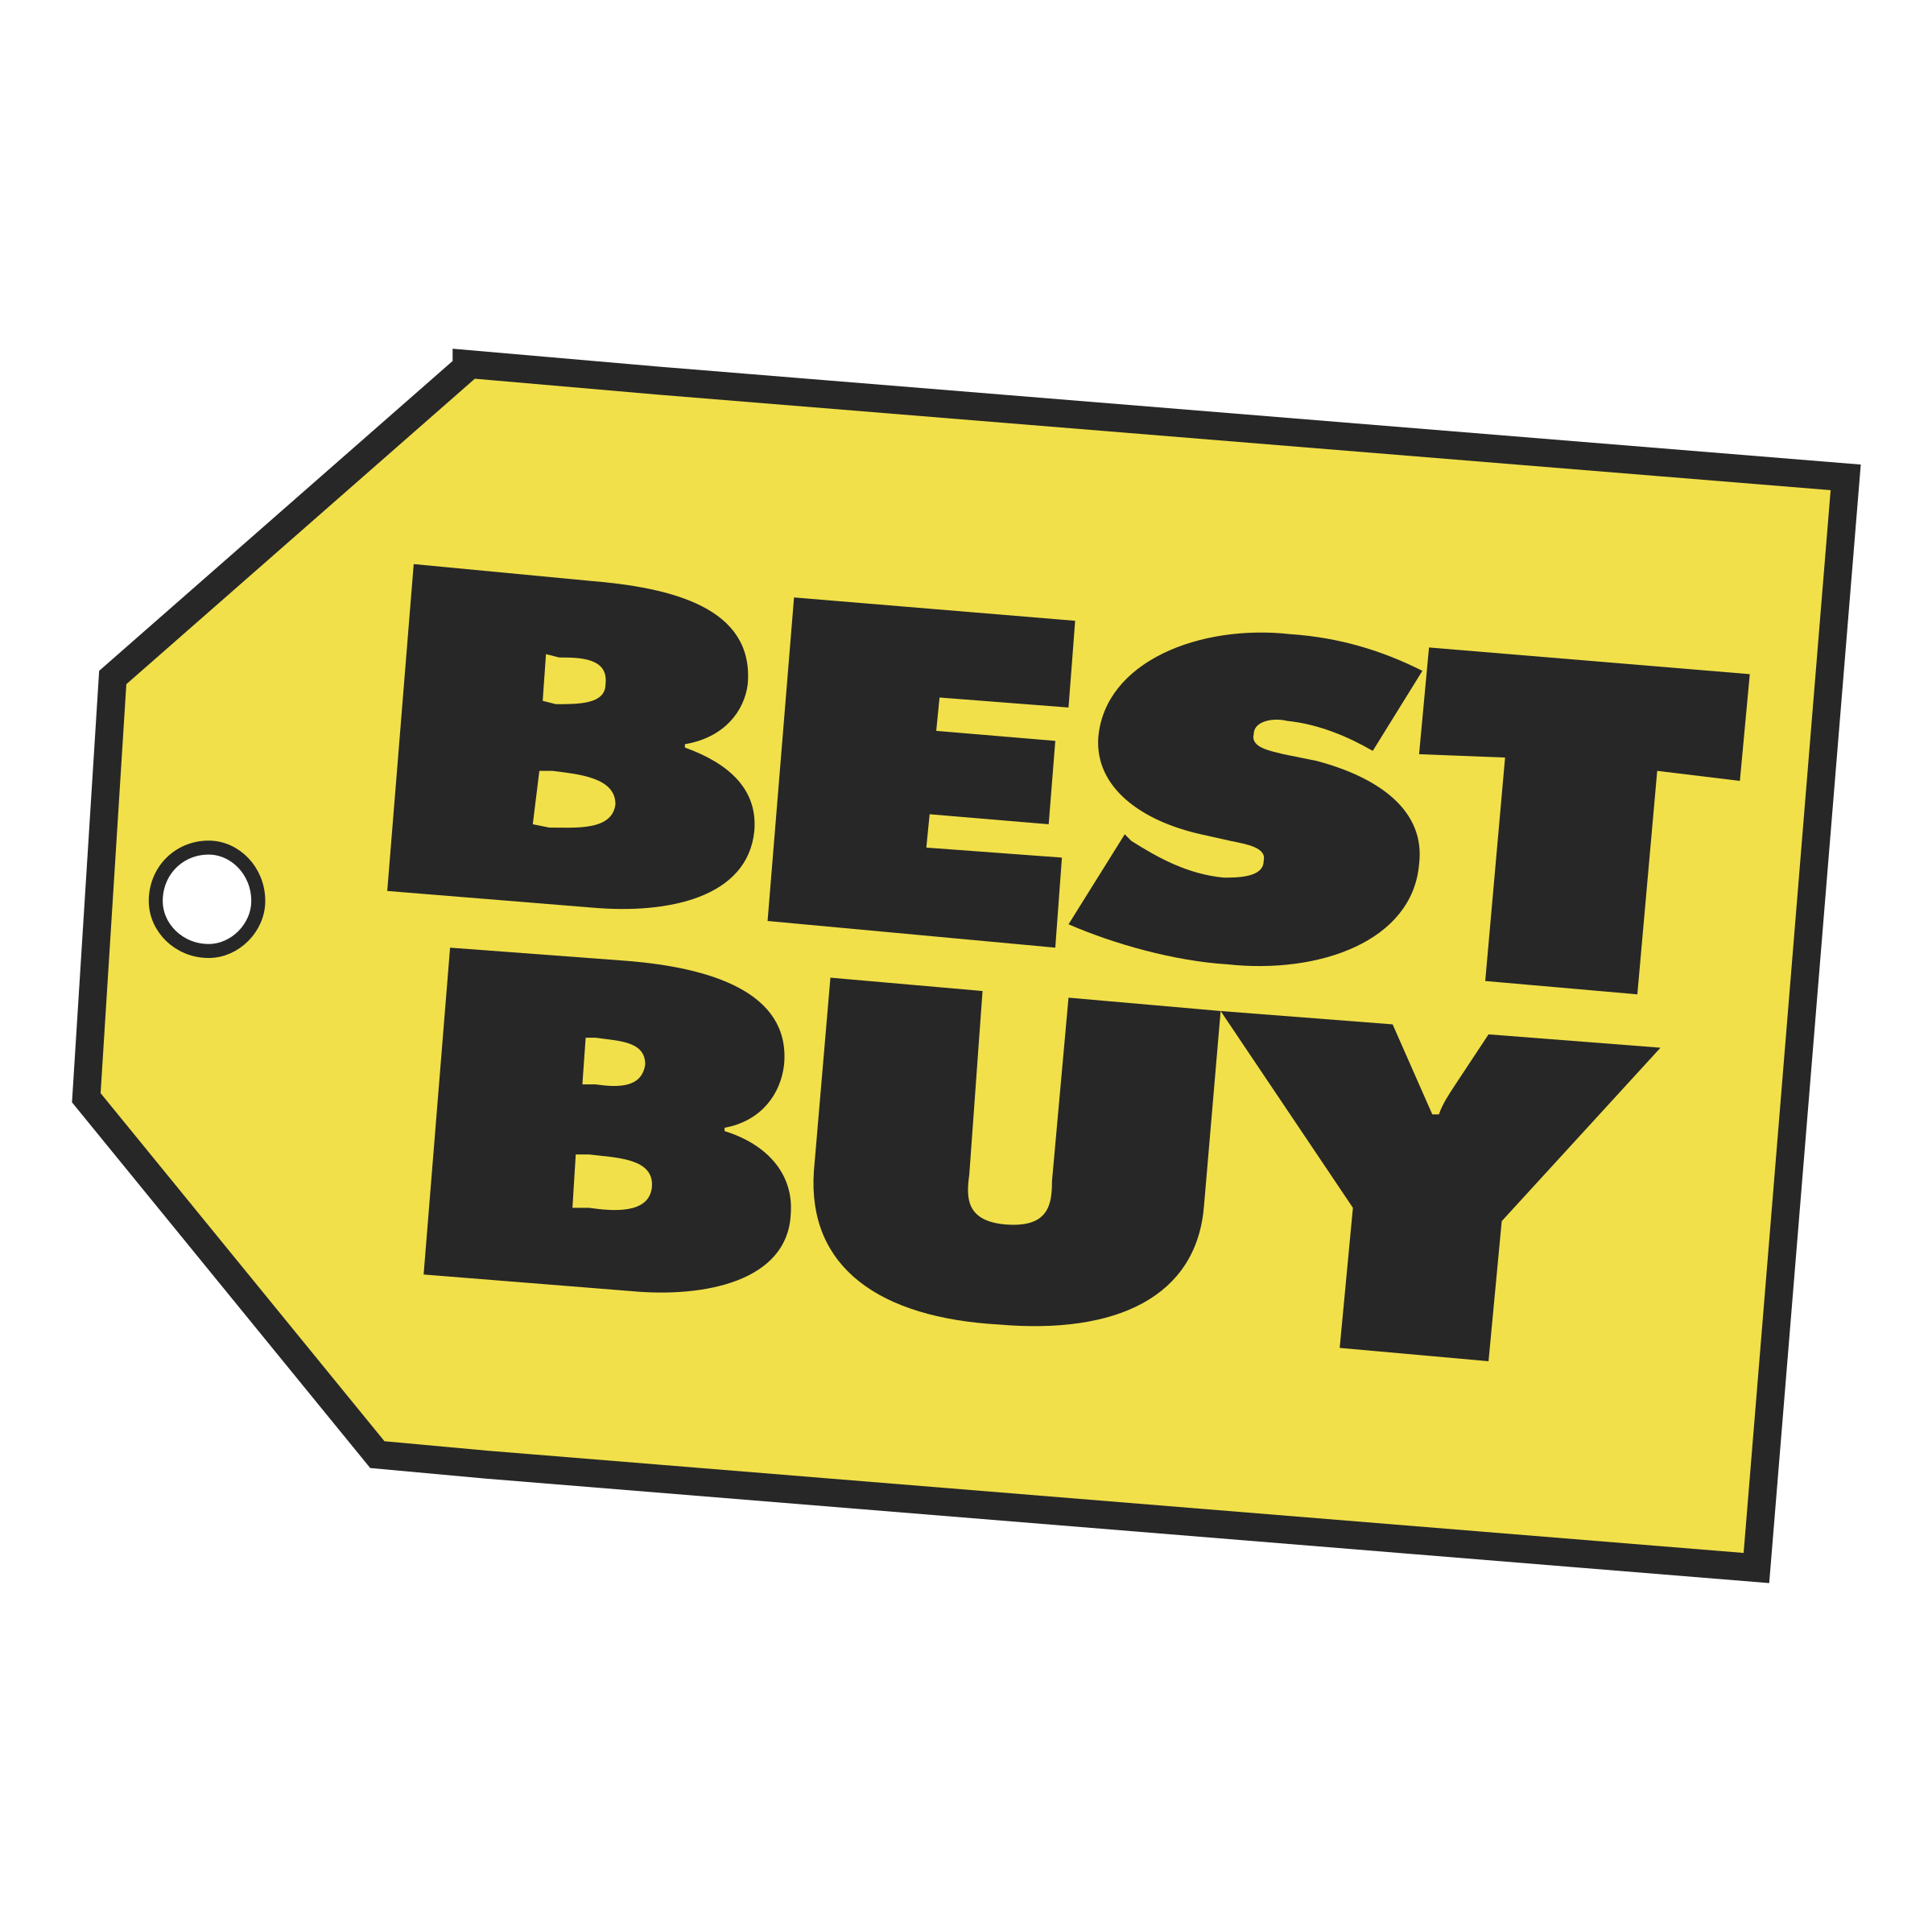 Best buy logo png. Transparent svg vector freebie